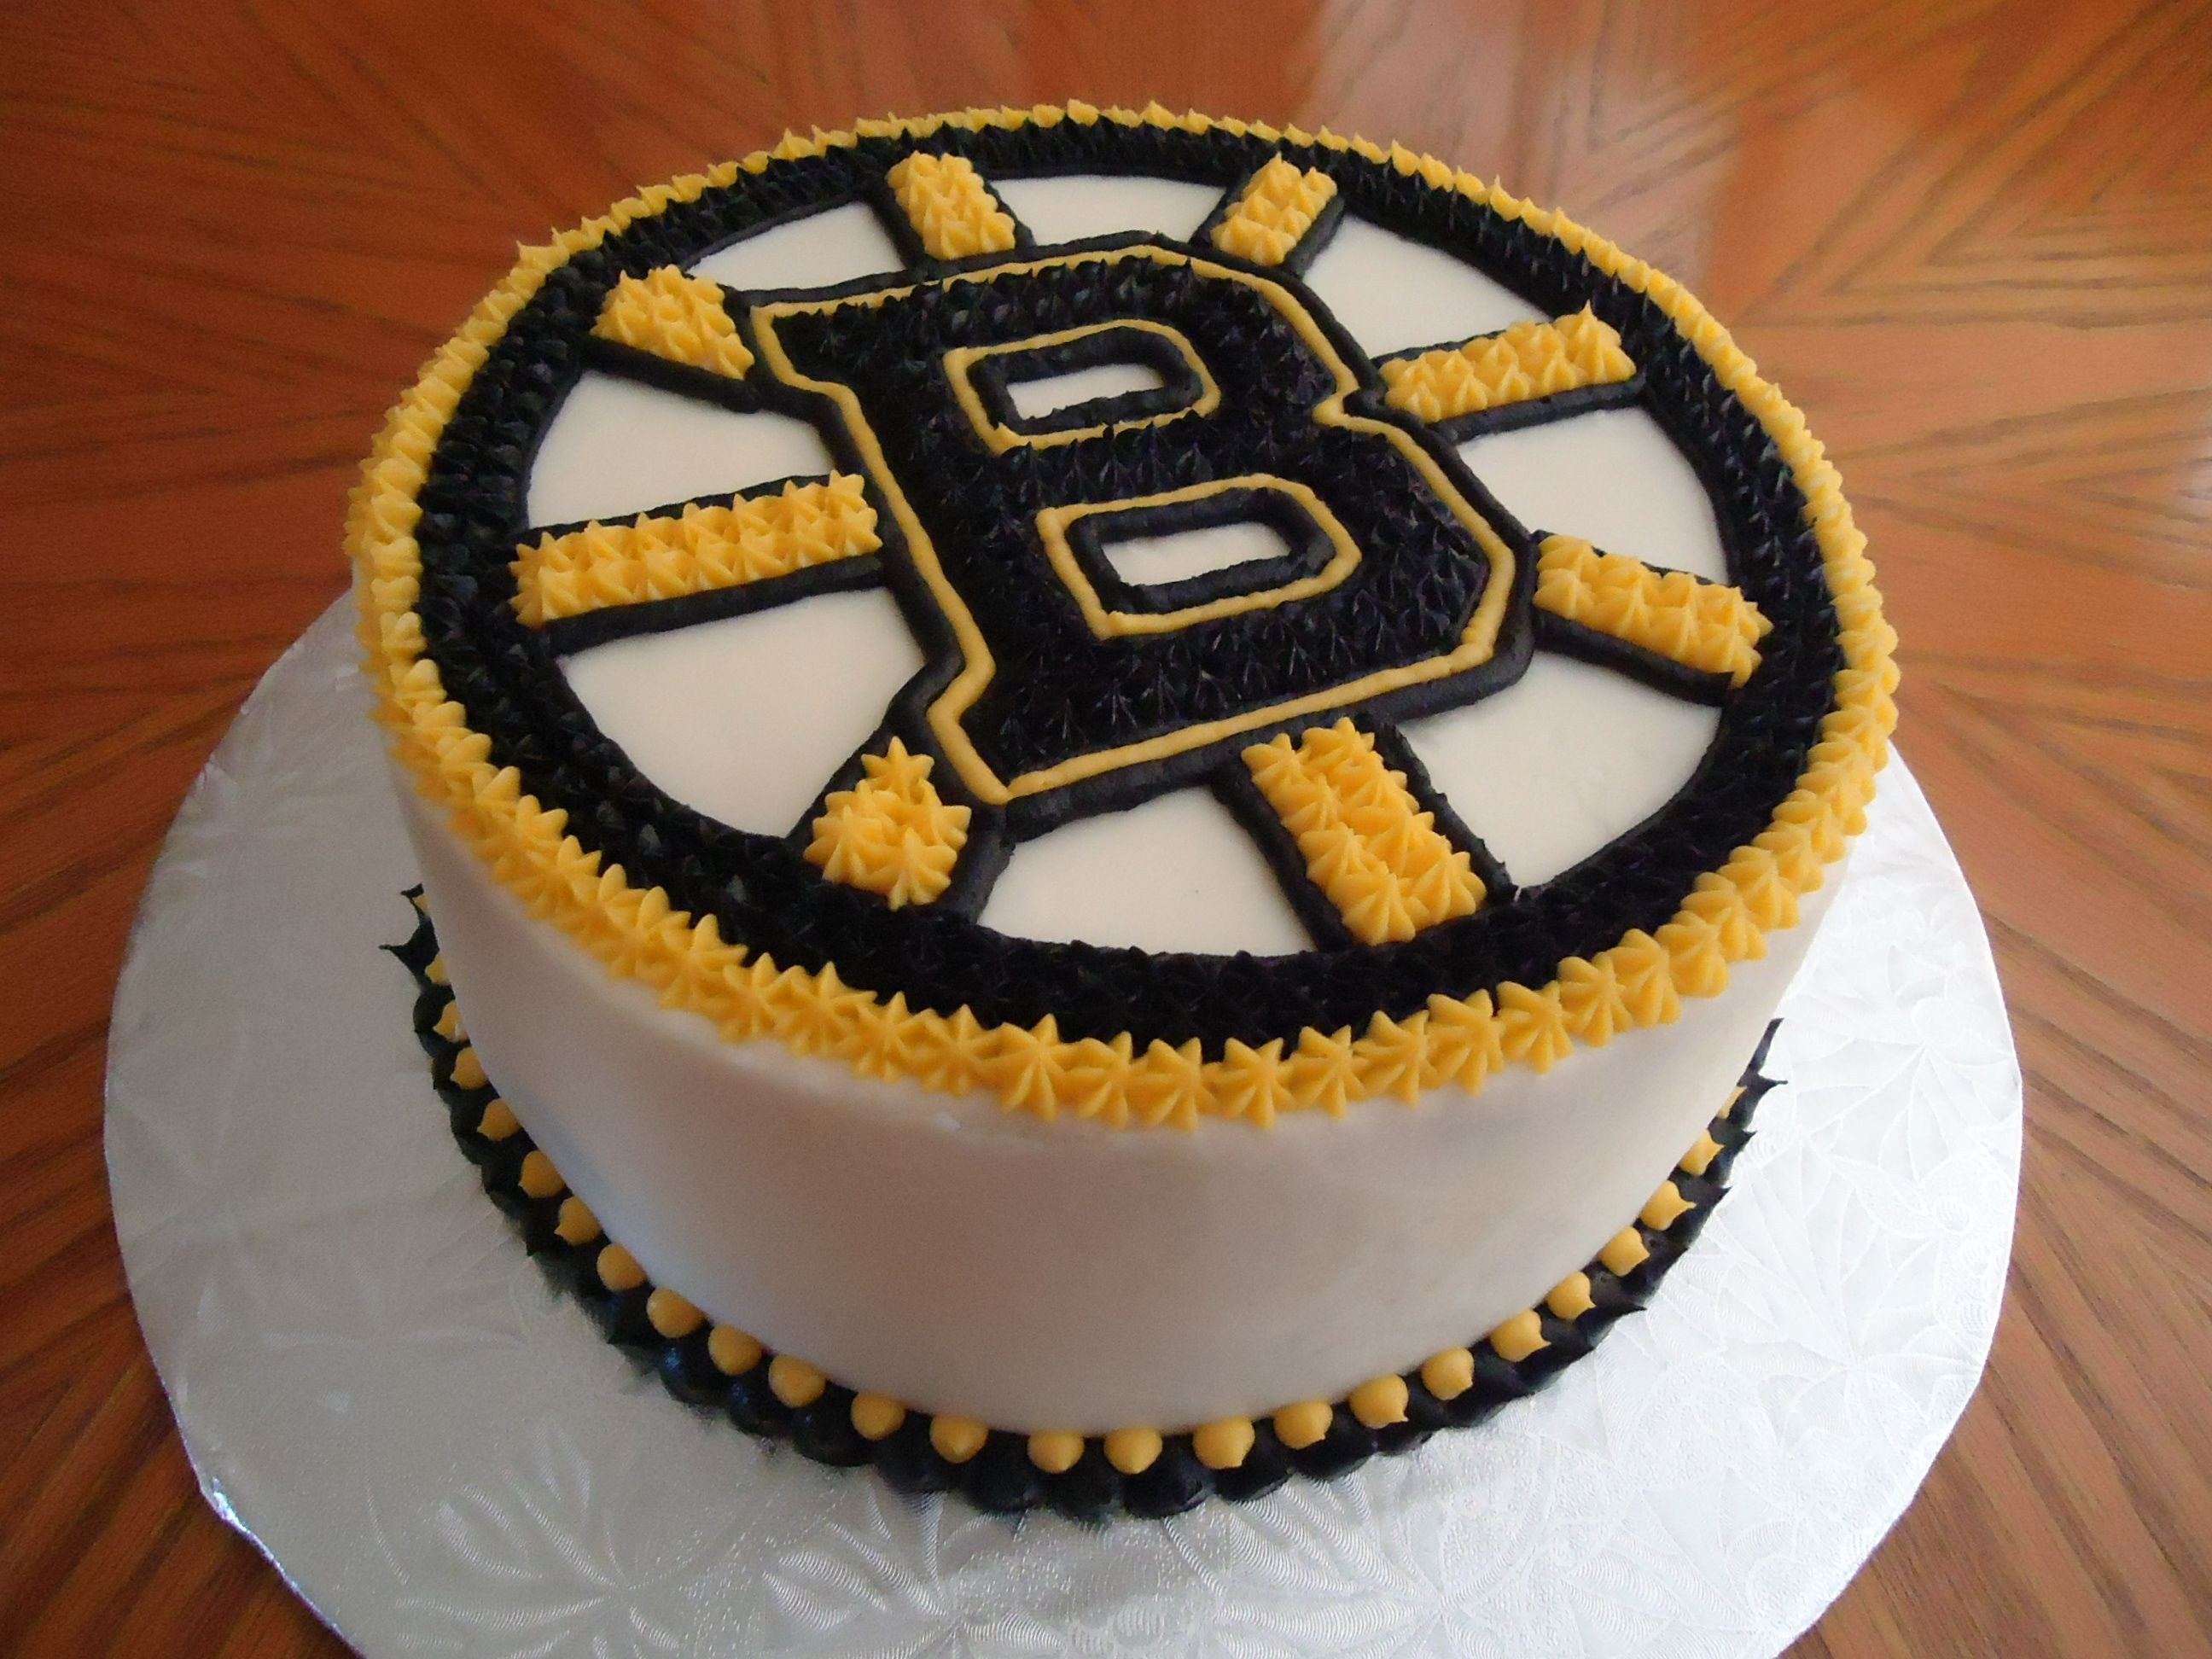 30 Pretty Image Of Birthday Cakes Boston Bruins Cake For